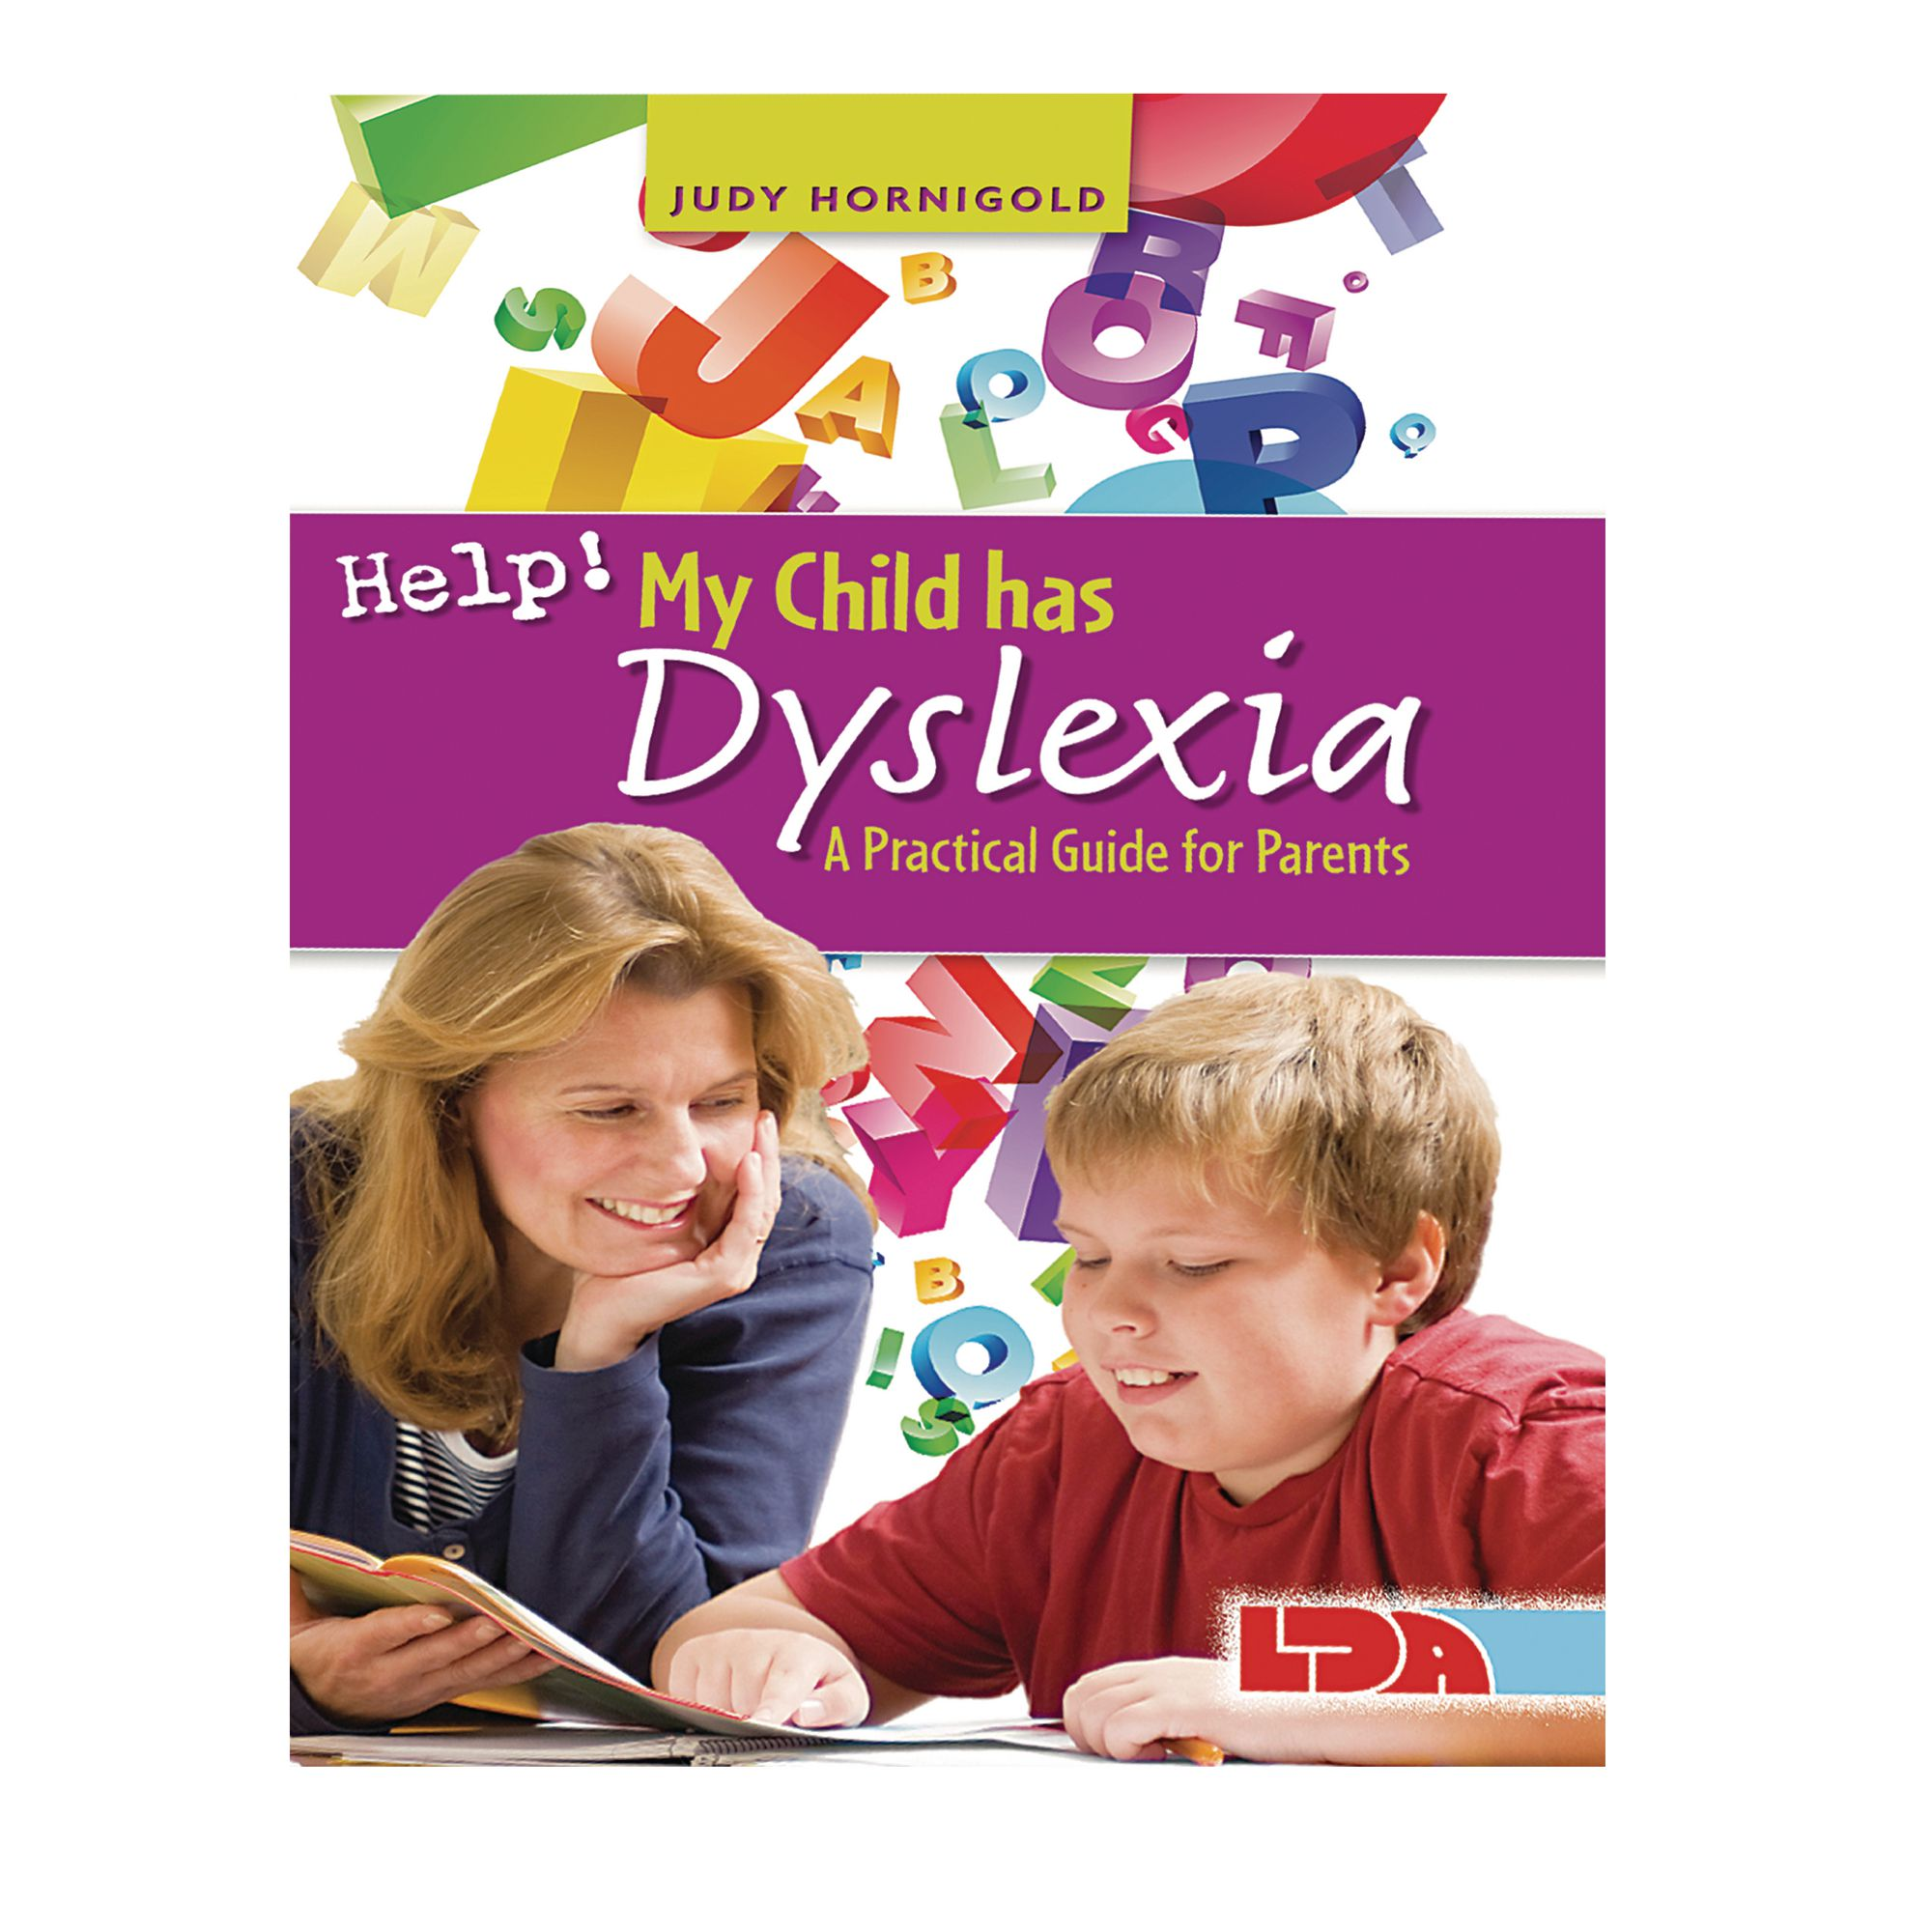 Dyslexia (I Want to Help My Child)